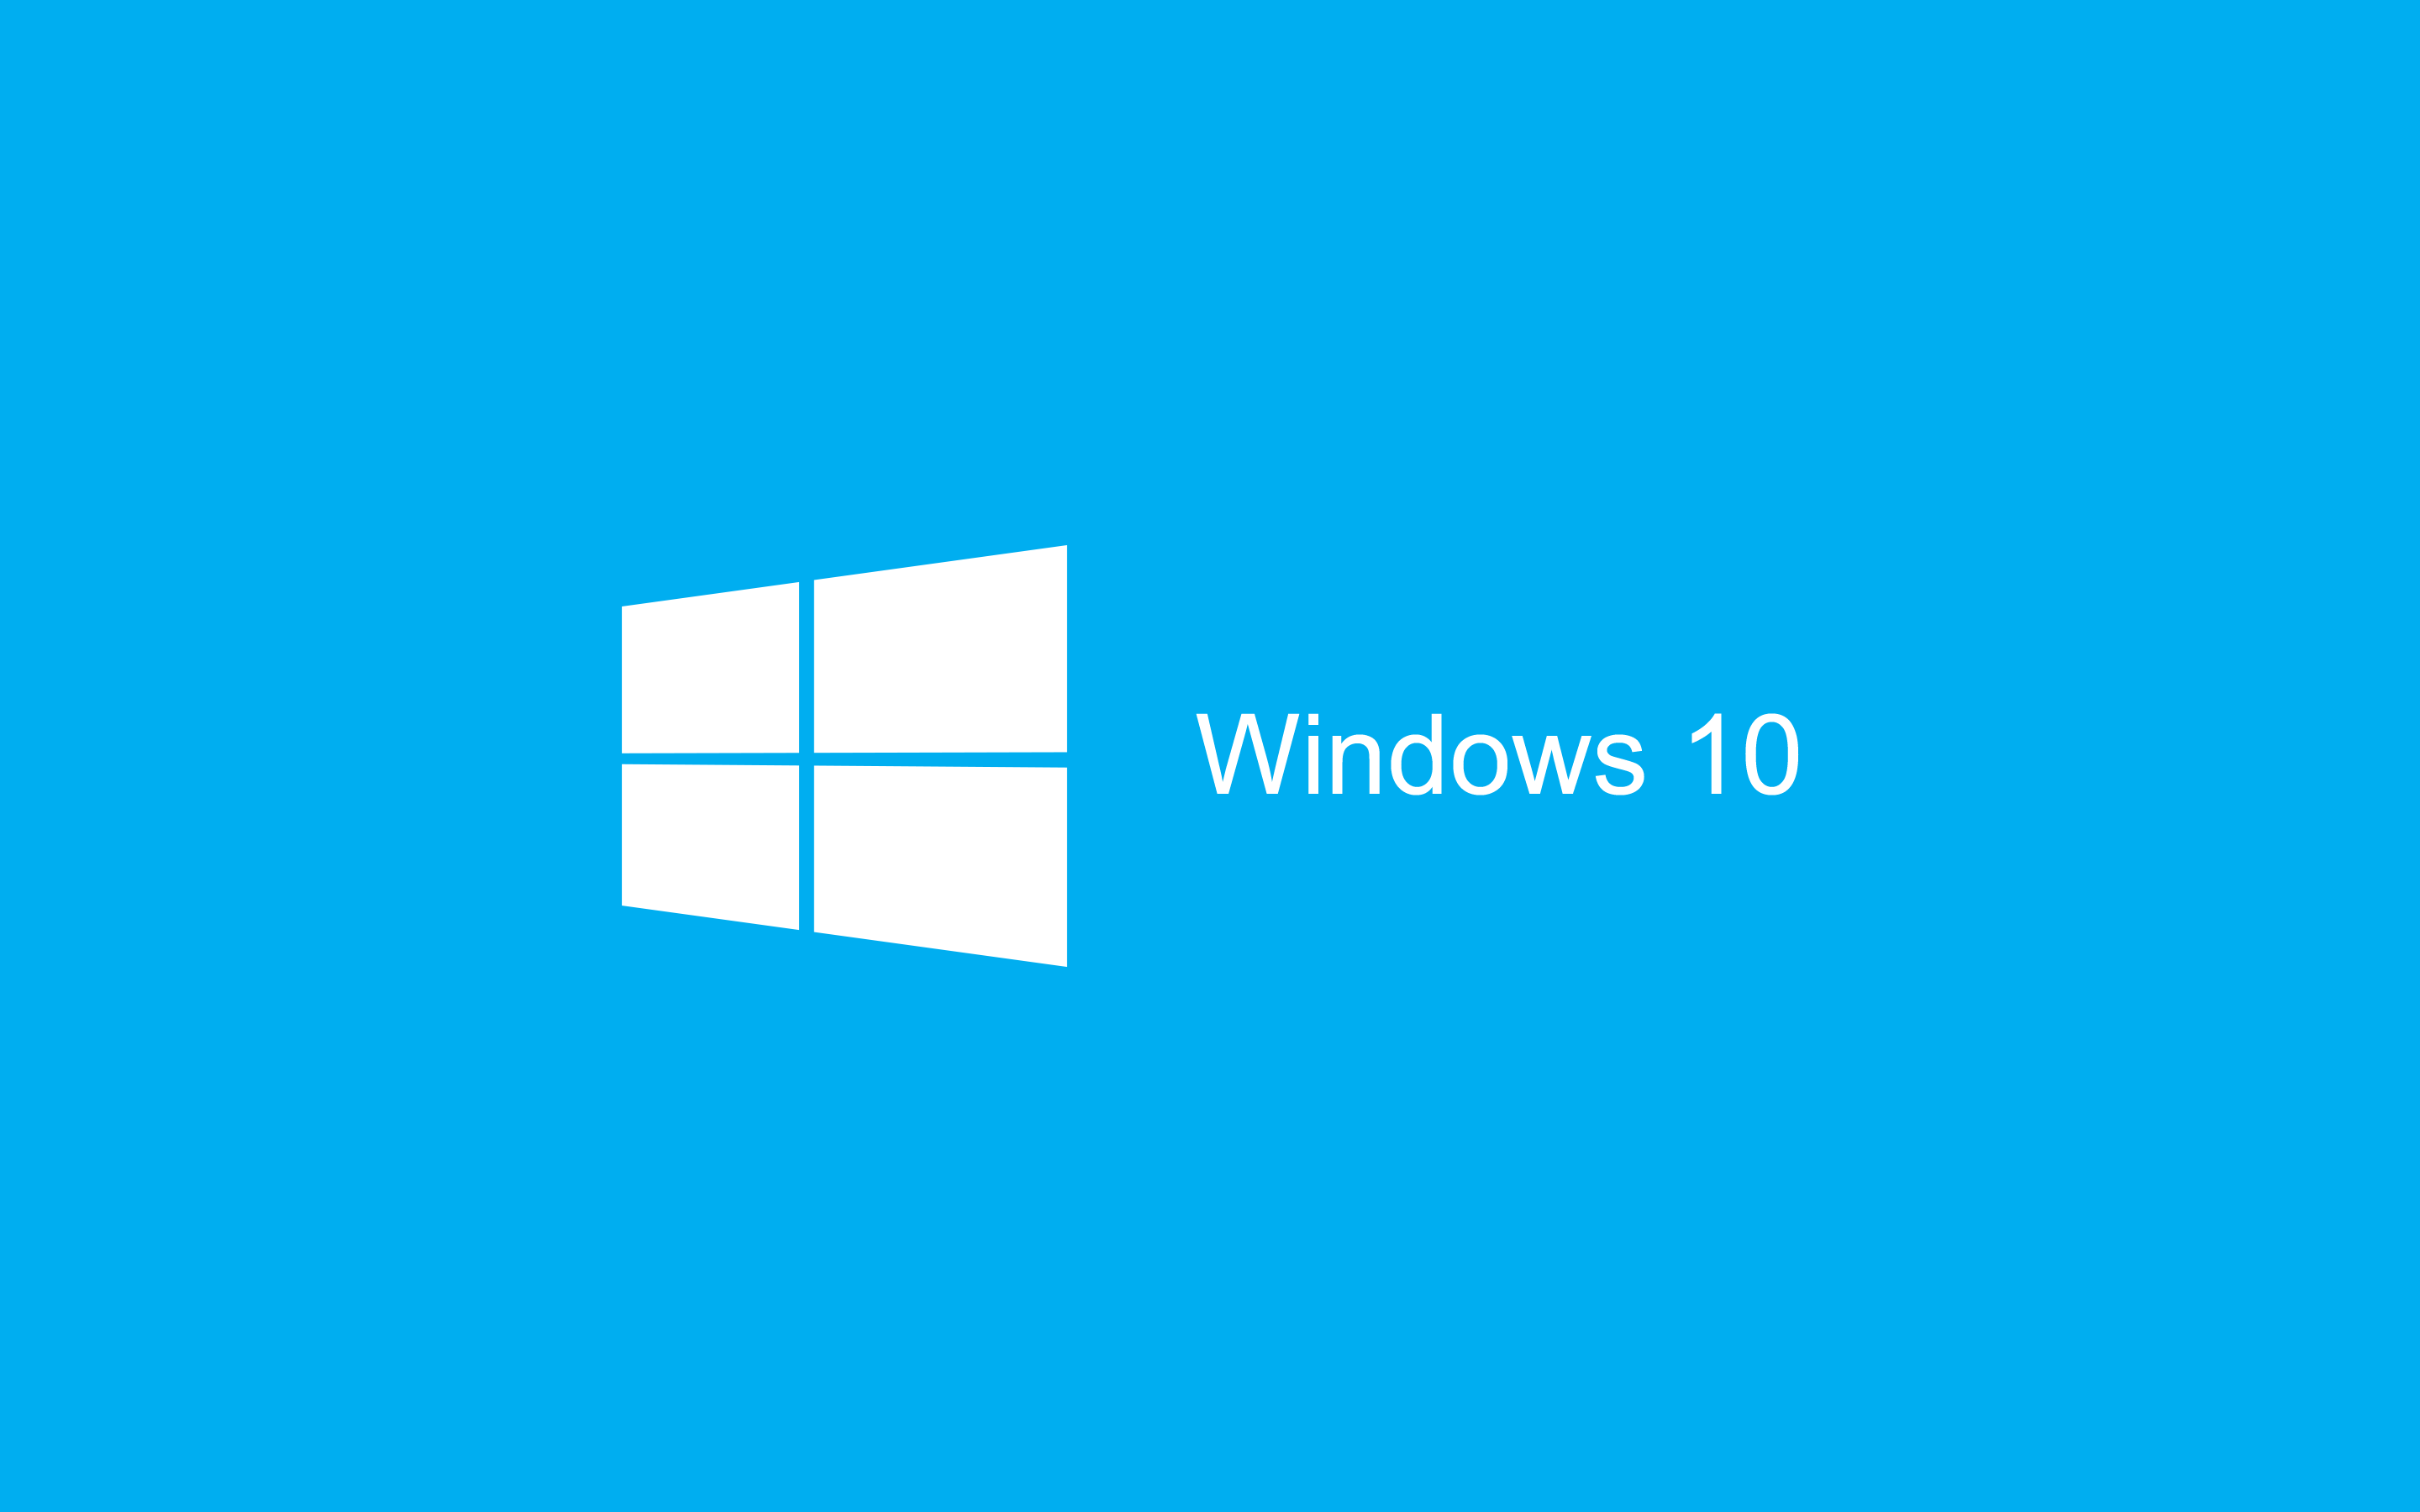 Windows 10 Wallpapers HD Download Freakifycom 2880x1800